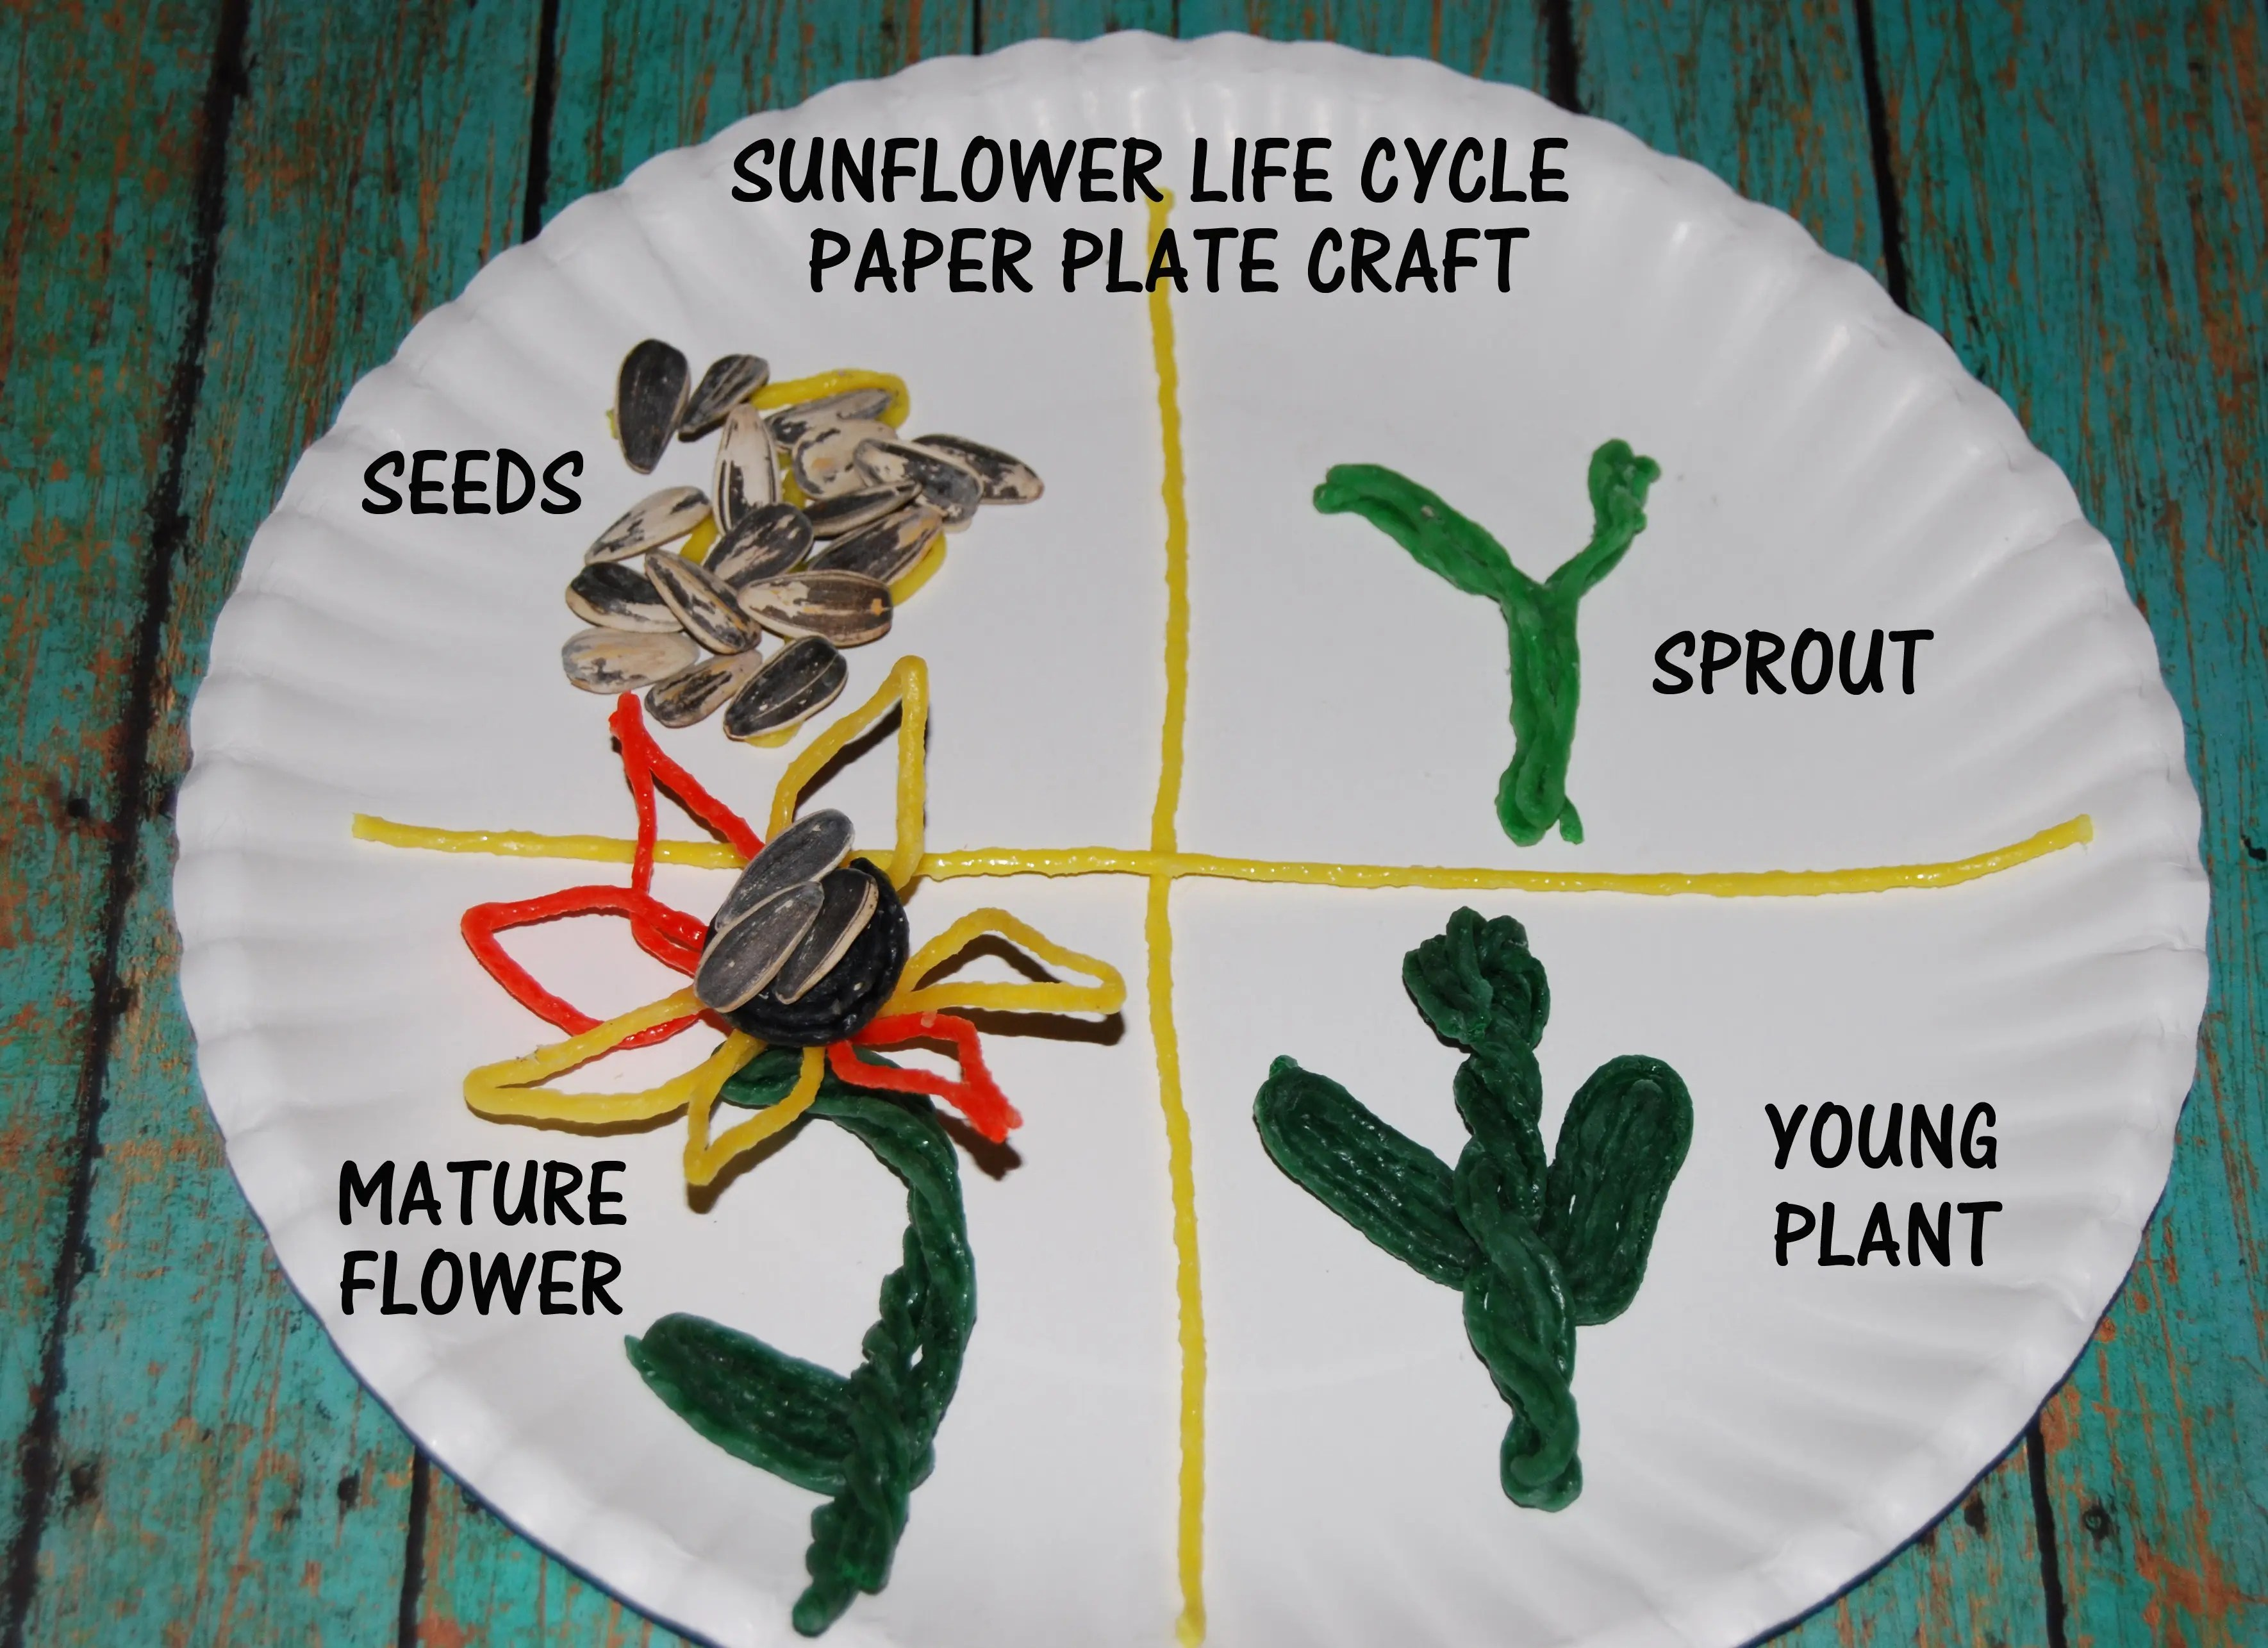 Wikki Stix Sunflower Life Cycle And Crafts For Kids